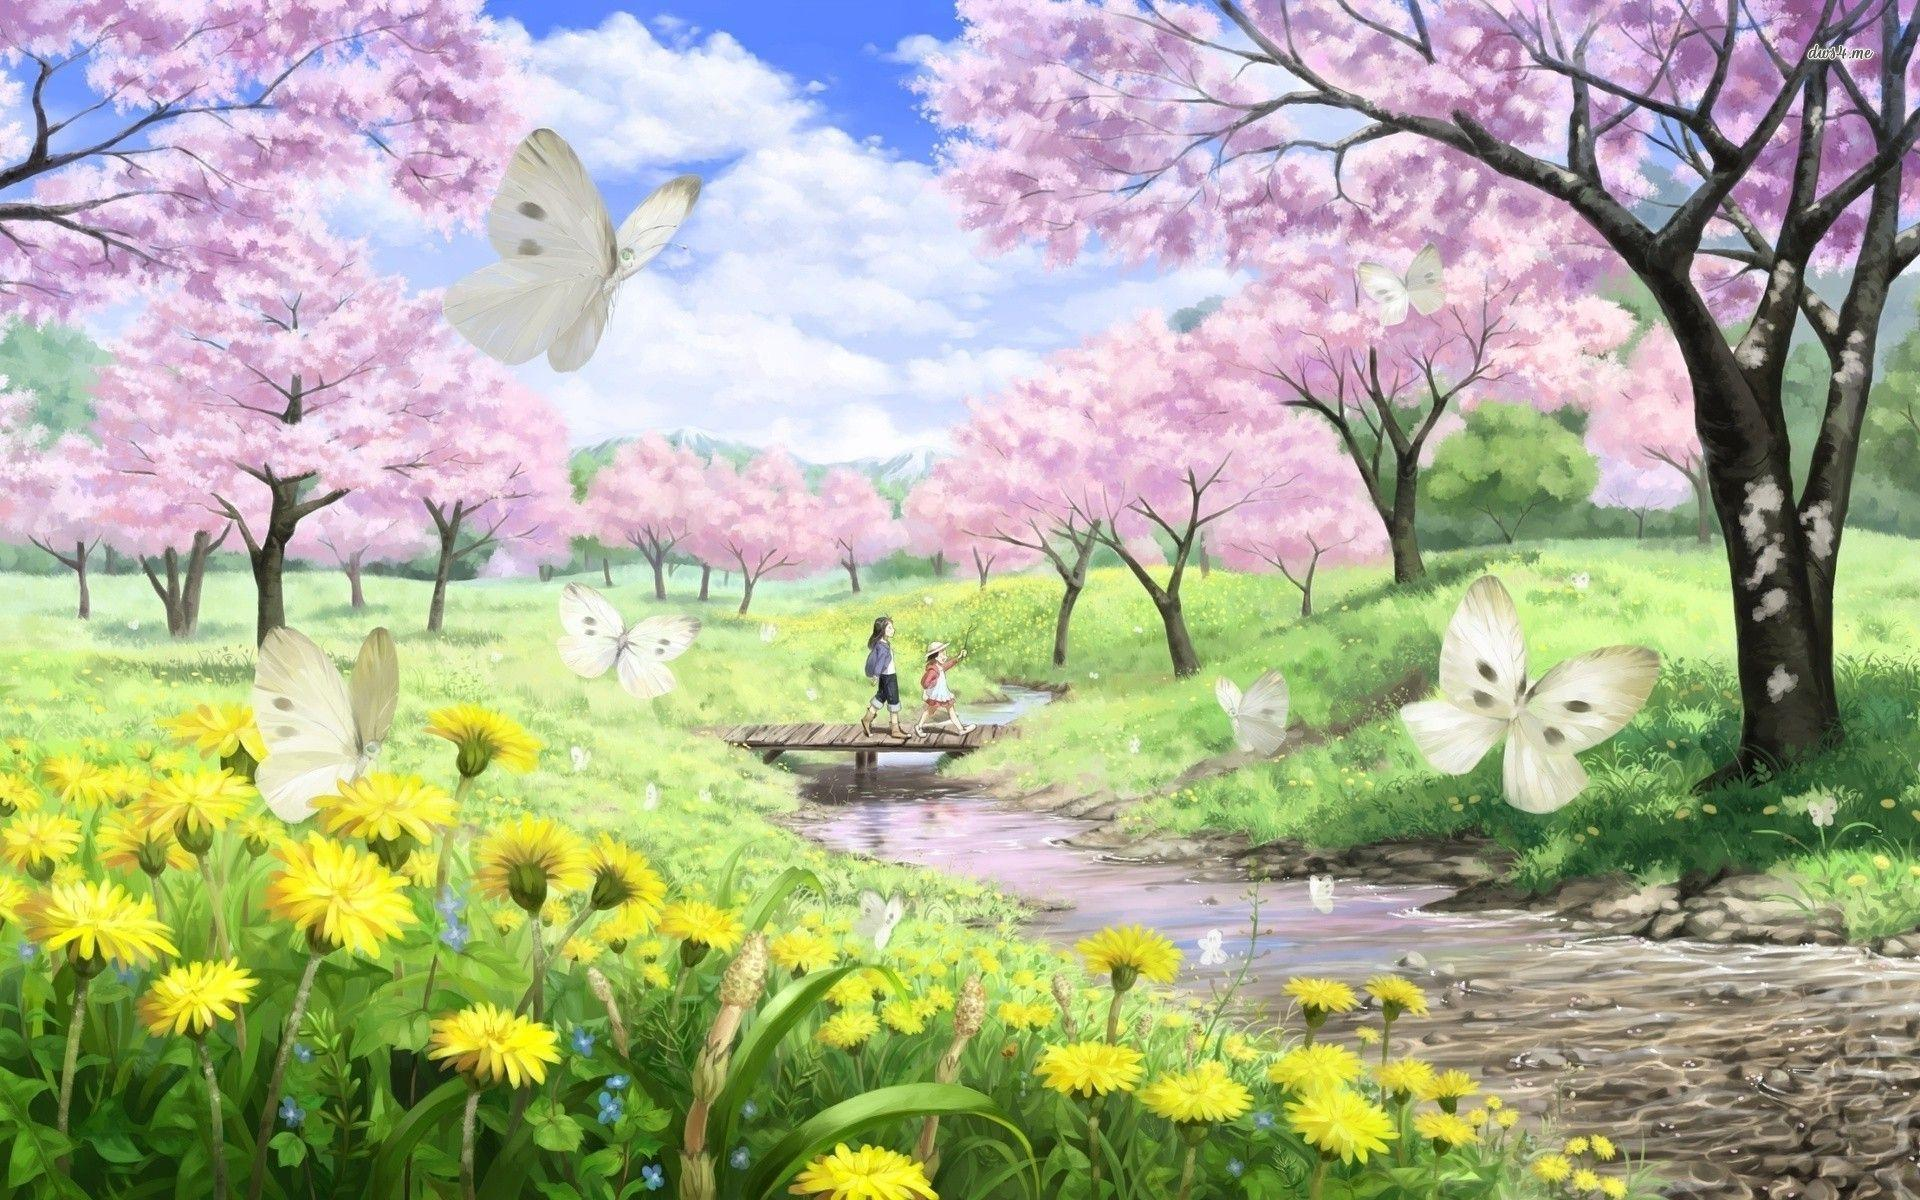 Spring Wallpaper - Wallpapers Browse